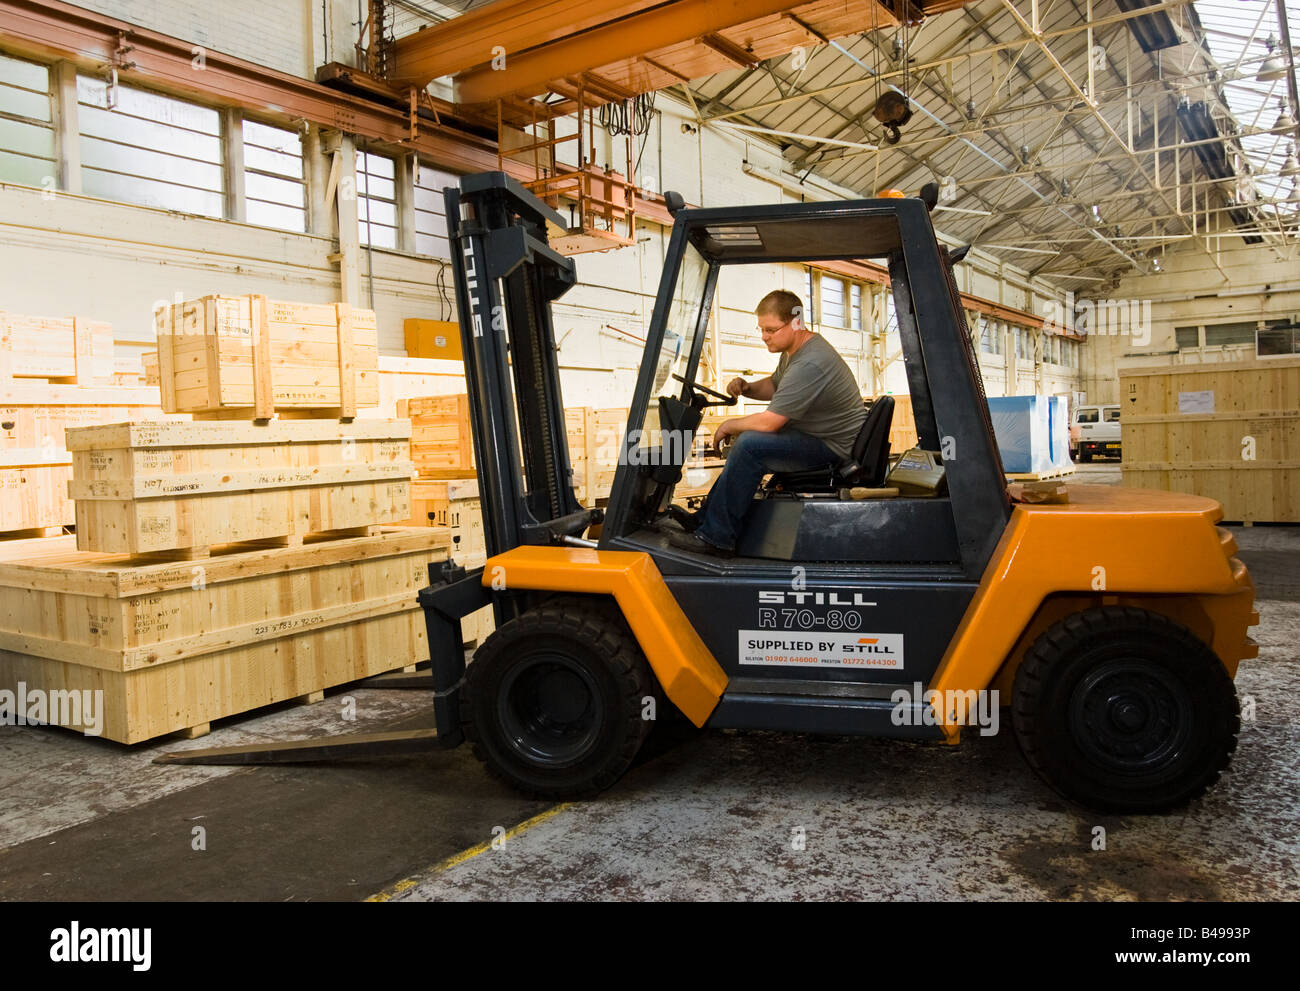 Forklift truck driver, warehouse, UK - Stock Image